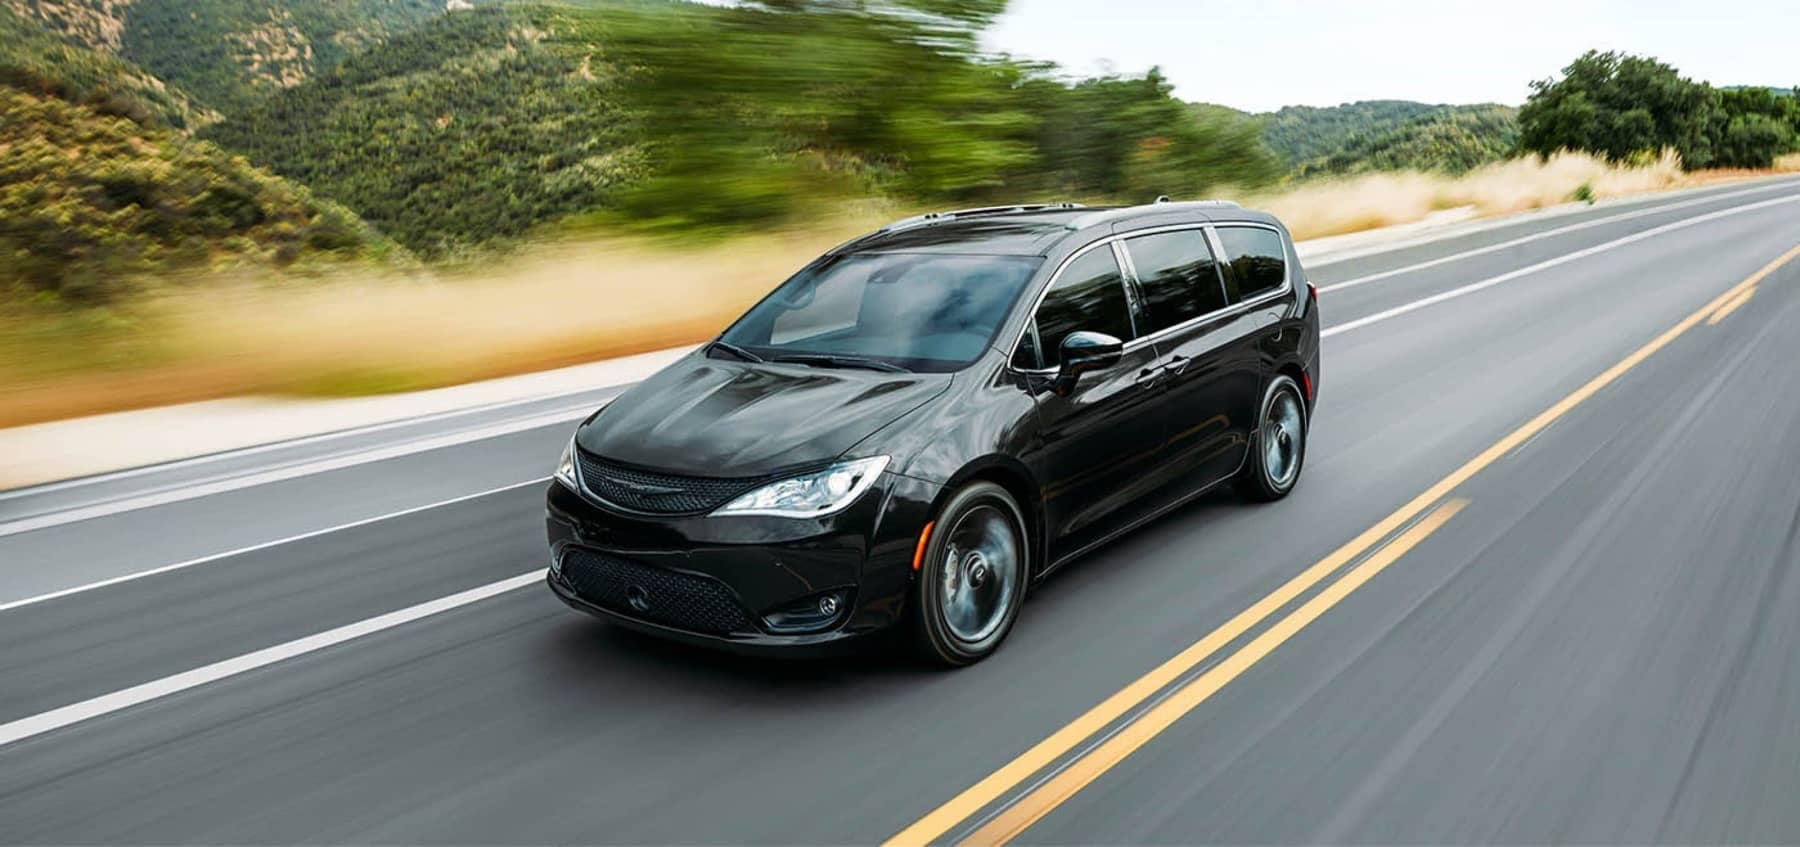 2020-chrysler-pacifica-gallery-3